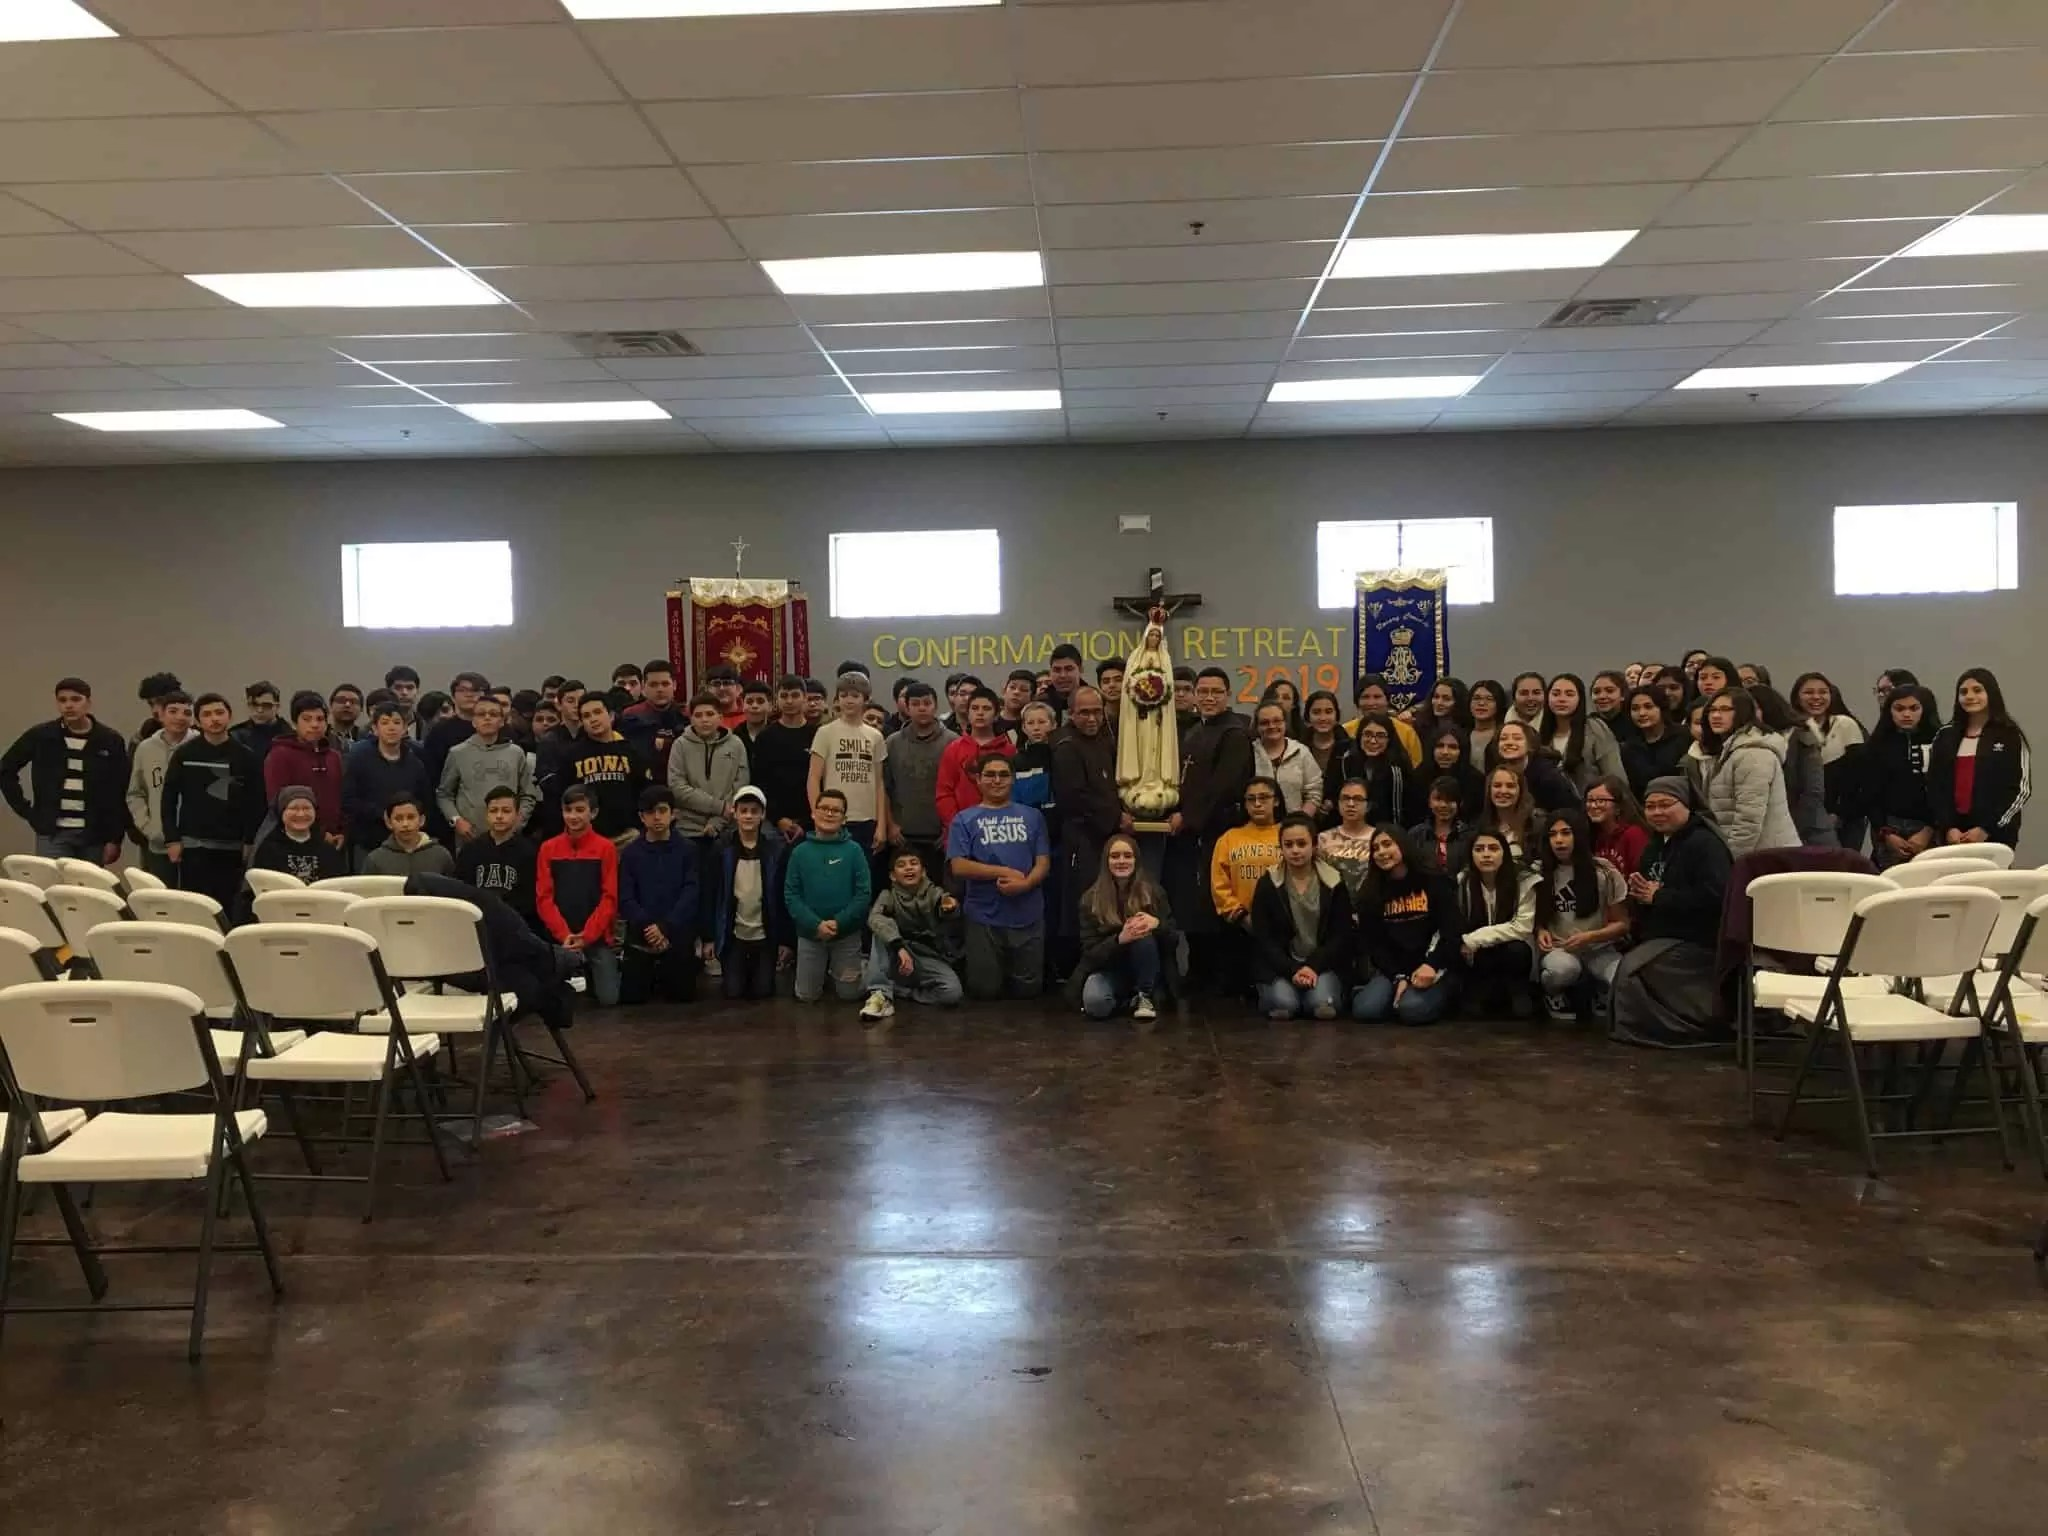 Students, Sisters, and Knights at confirmation retreat